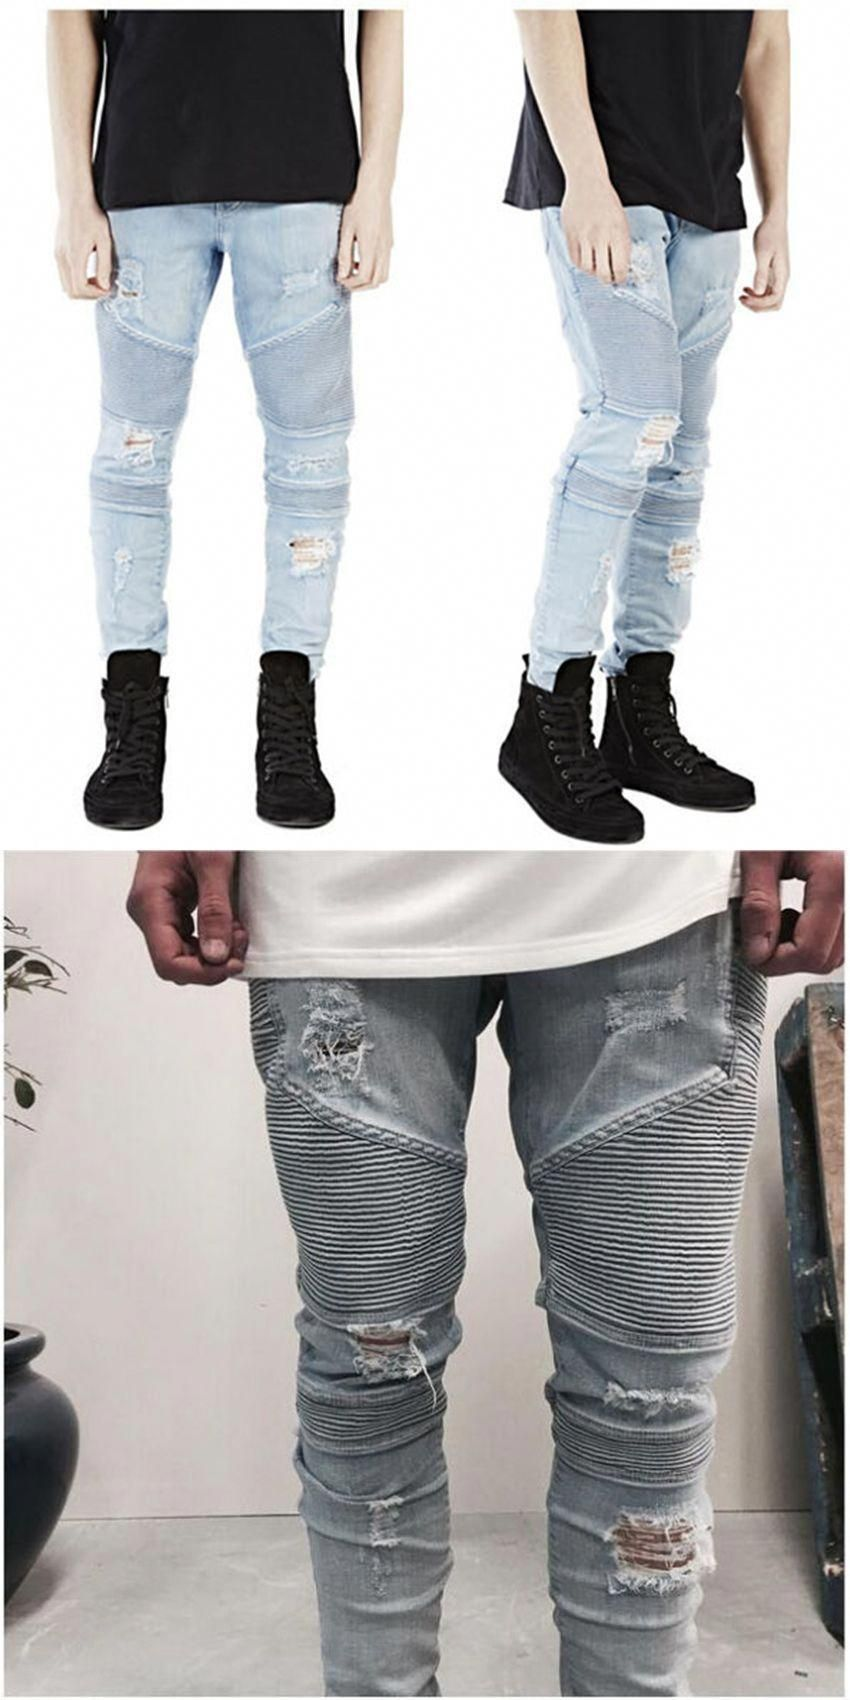 48990ca3687e TOP Men s hole BIKER Ripped  jeans With Zipper Skinny Cool Slim Fit Mens  West Jeans Urban harem patches pants For Men joggers